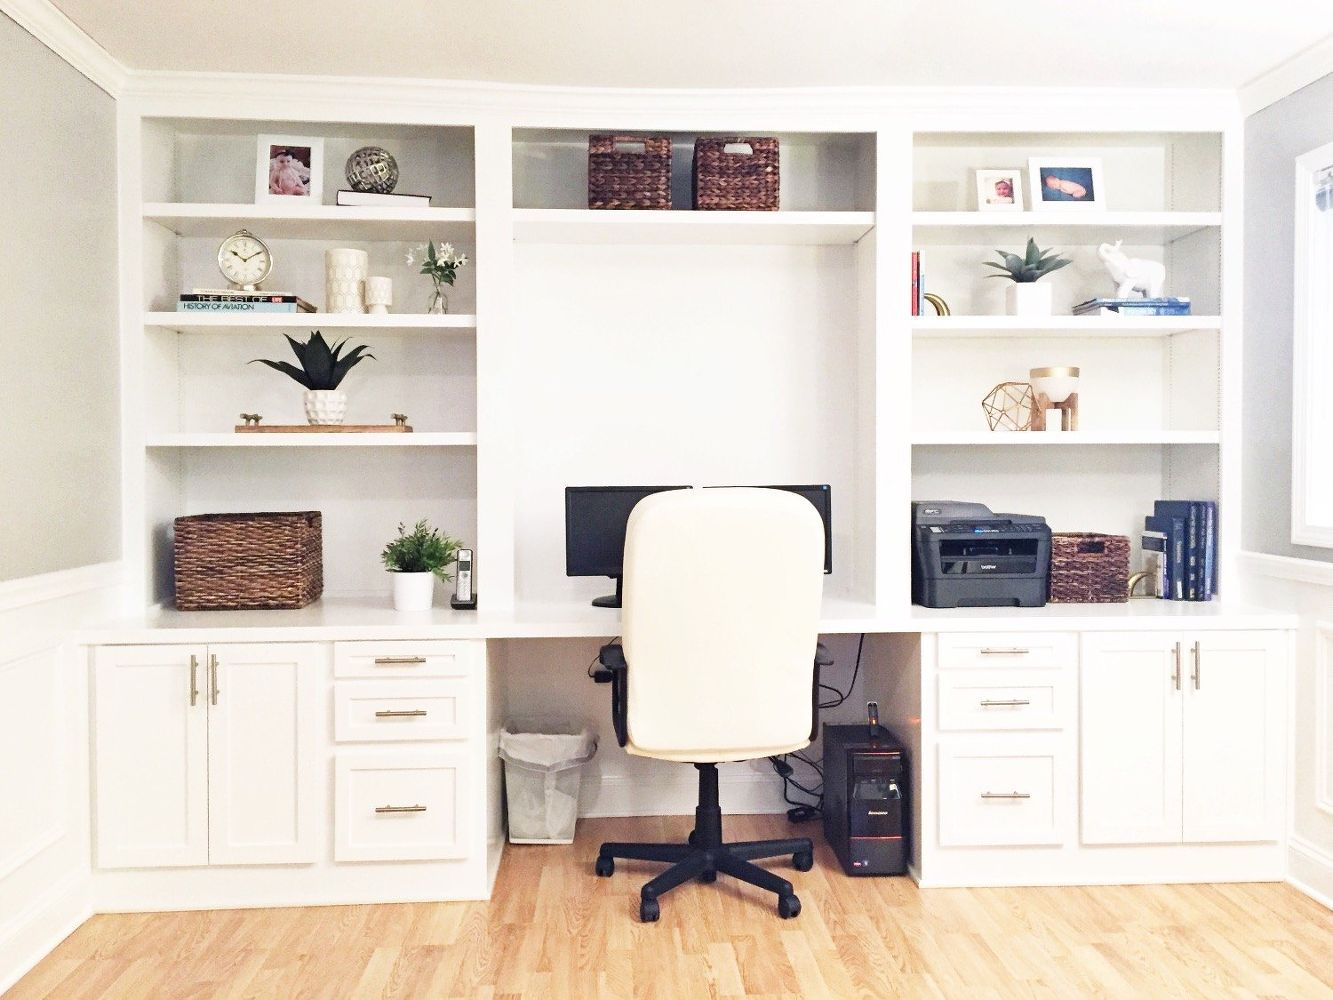 How to Make a Fake Built-In Desk for Less   Pinterest   Idea paint ...